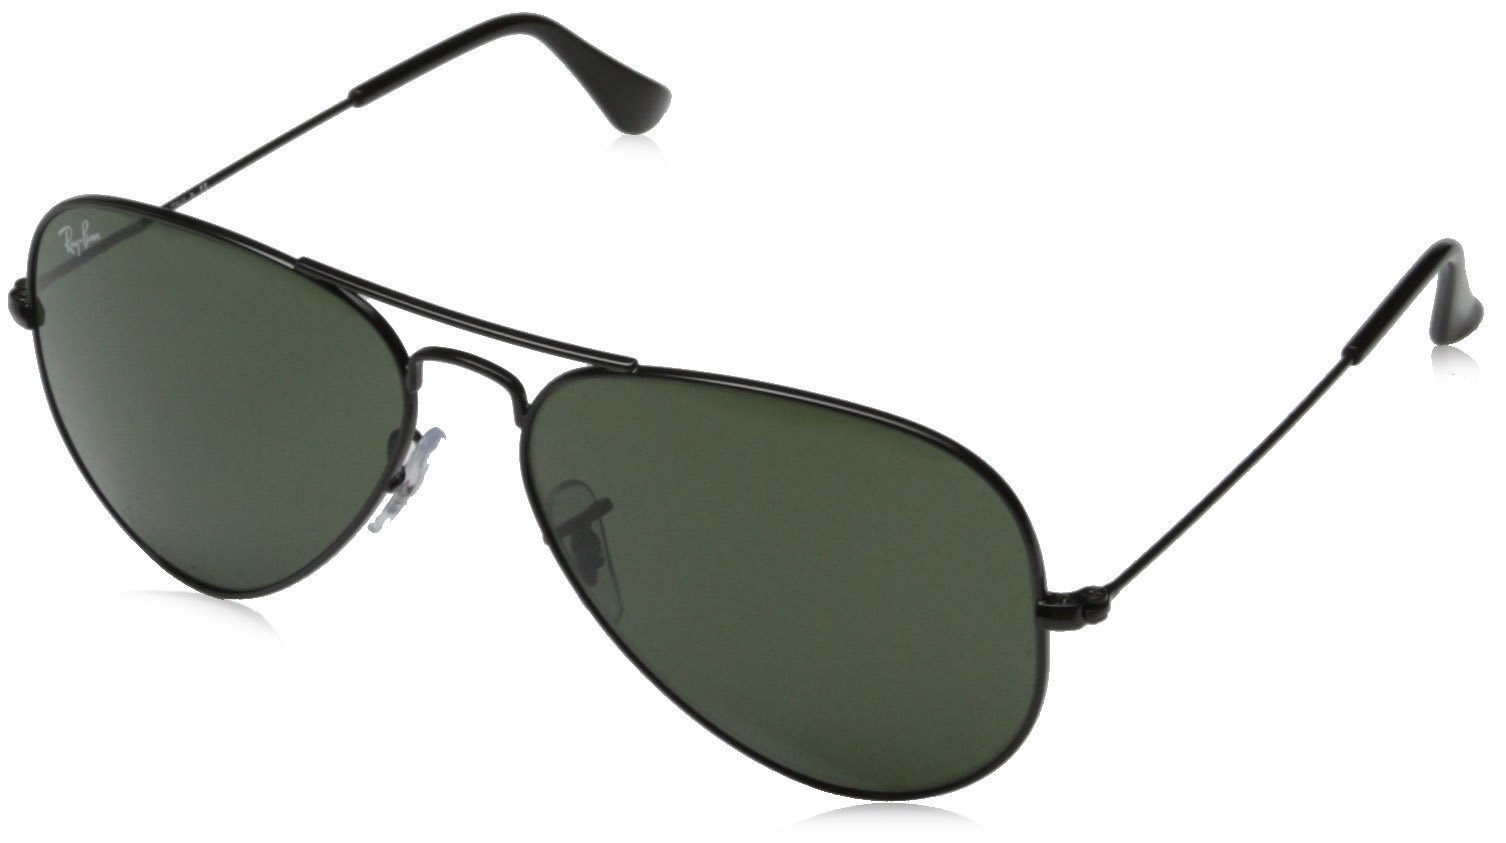 Ray-Ban 0RB3025 Aviator Metal Non-Polarized Sunglasses, Black/ Grey Green, 58mm by Ray-Ban